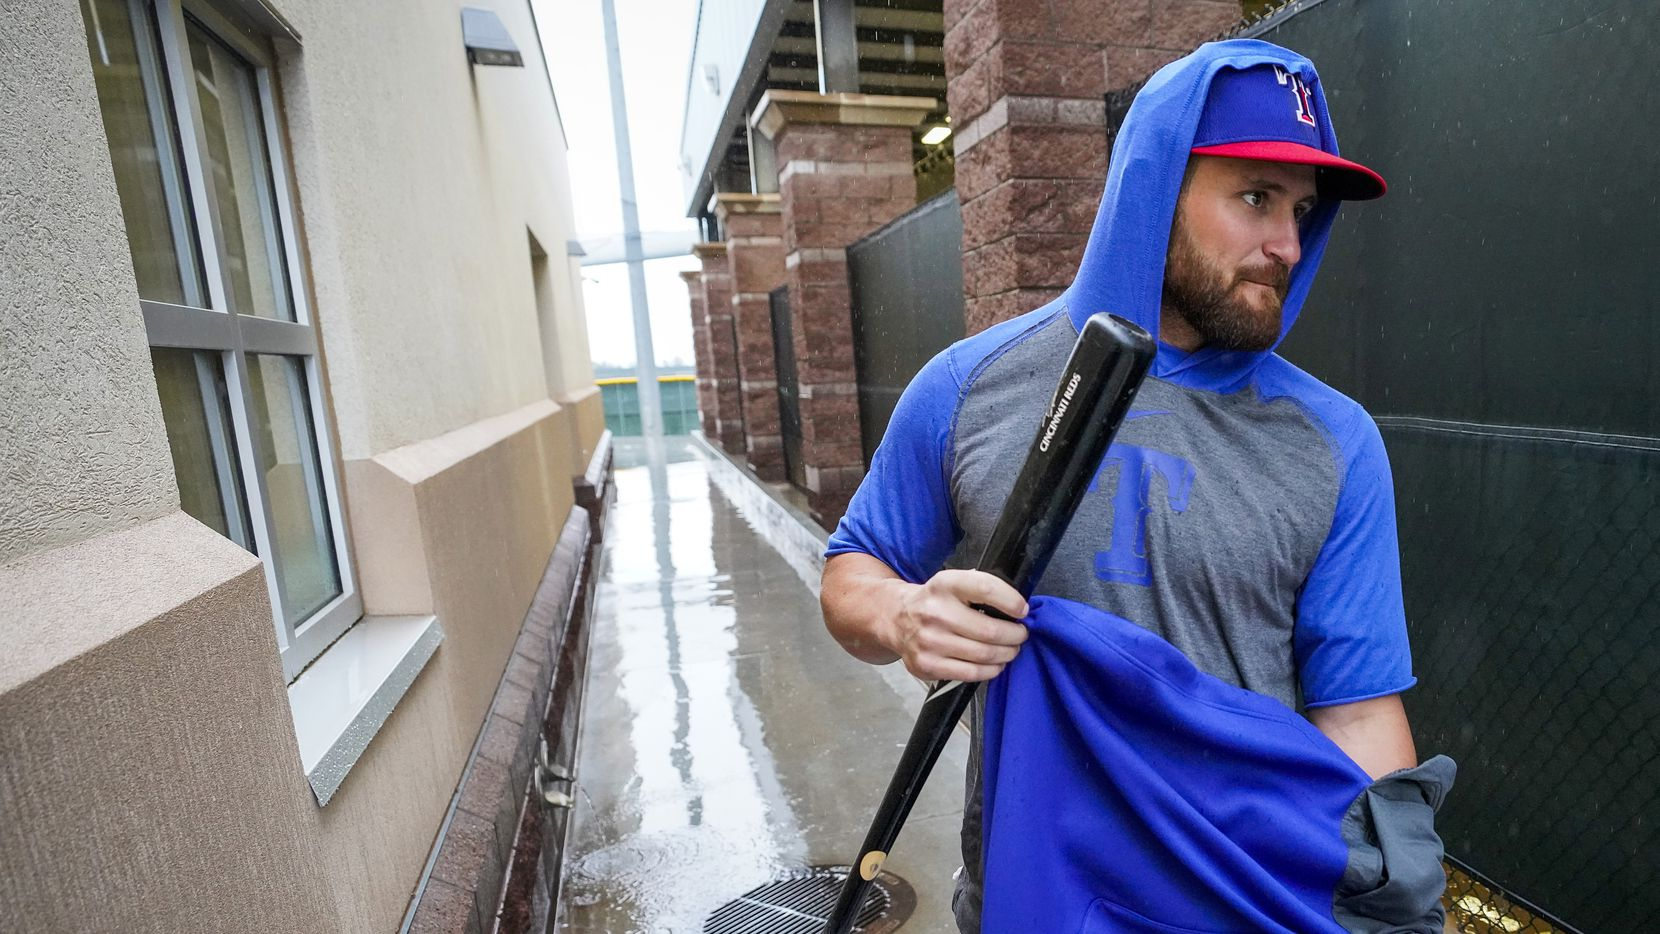 Texas Rangers catcher Nick Ciuffo puts on a warmup as he heads to the indoor batting cage during a spring training workout at the team's spring training facility on Saturday, Feb. 22, 2020, in Surprise, Ariz. The Rangers scheduled game against the Milwaukee Brewers was cancelled due to the weather.